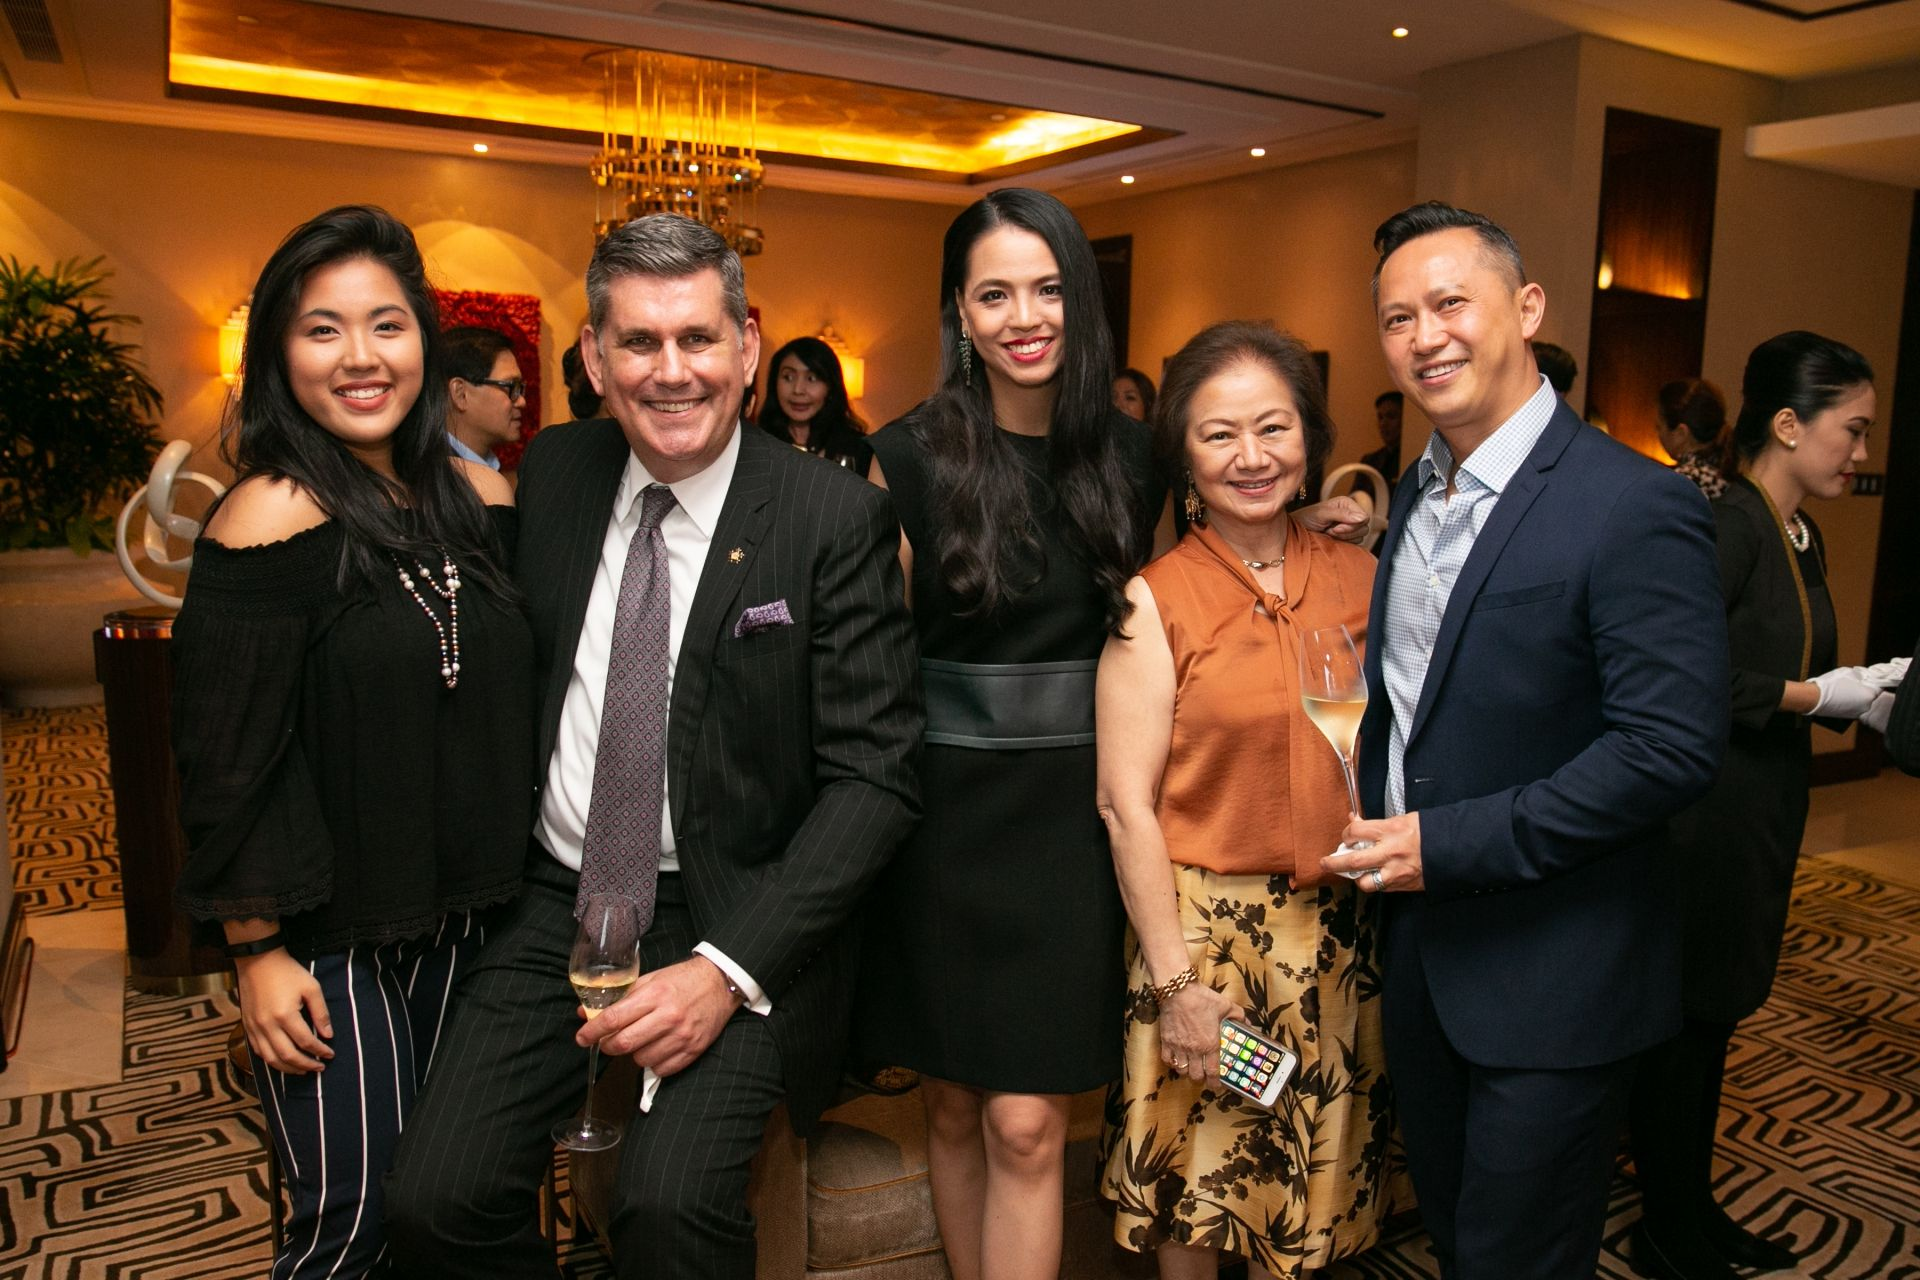 Isabel Francisco, Michael Ziemer VP Hotels; FB of City of Dreams Manila, Ingrid Chua, Charisse Chuidian VP of PR City of Dreams Manila and Edmond Yuen.